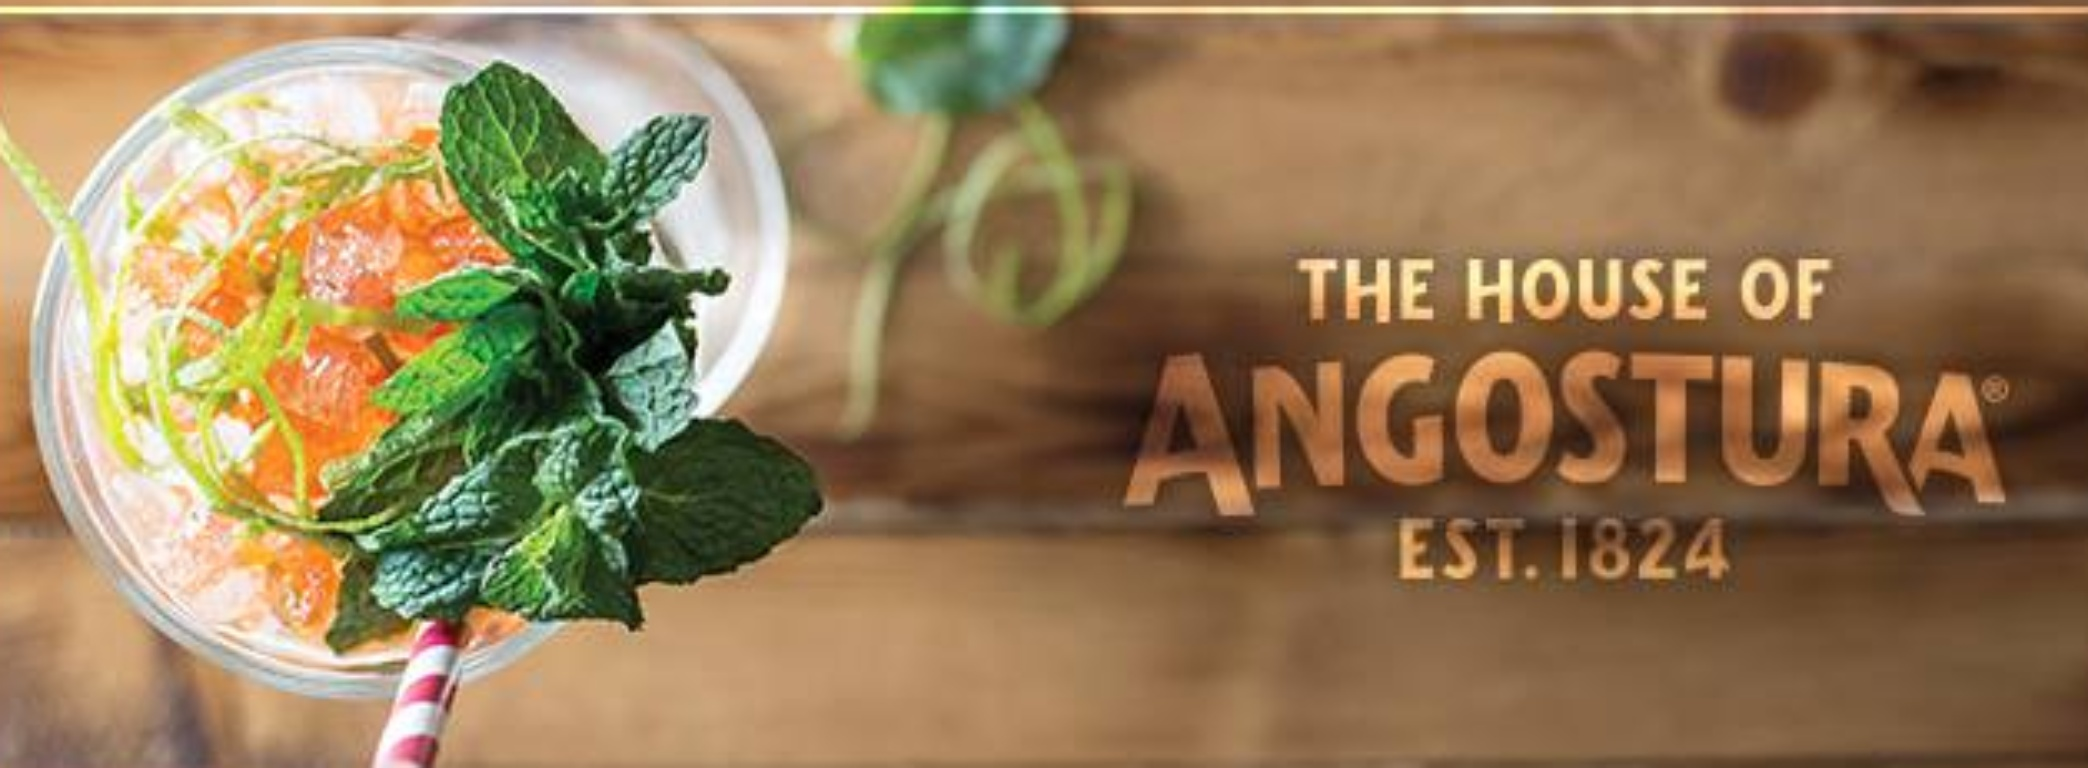 Watch: From Venezuela to Trinidad, Angostura's legacy continues